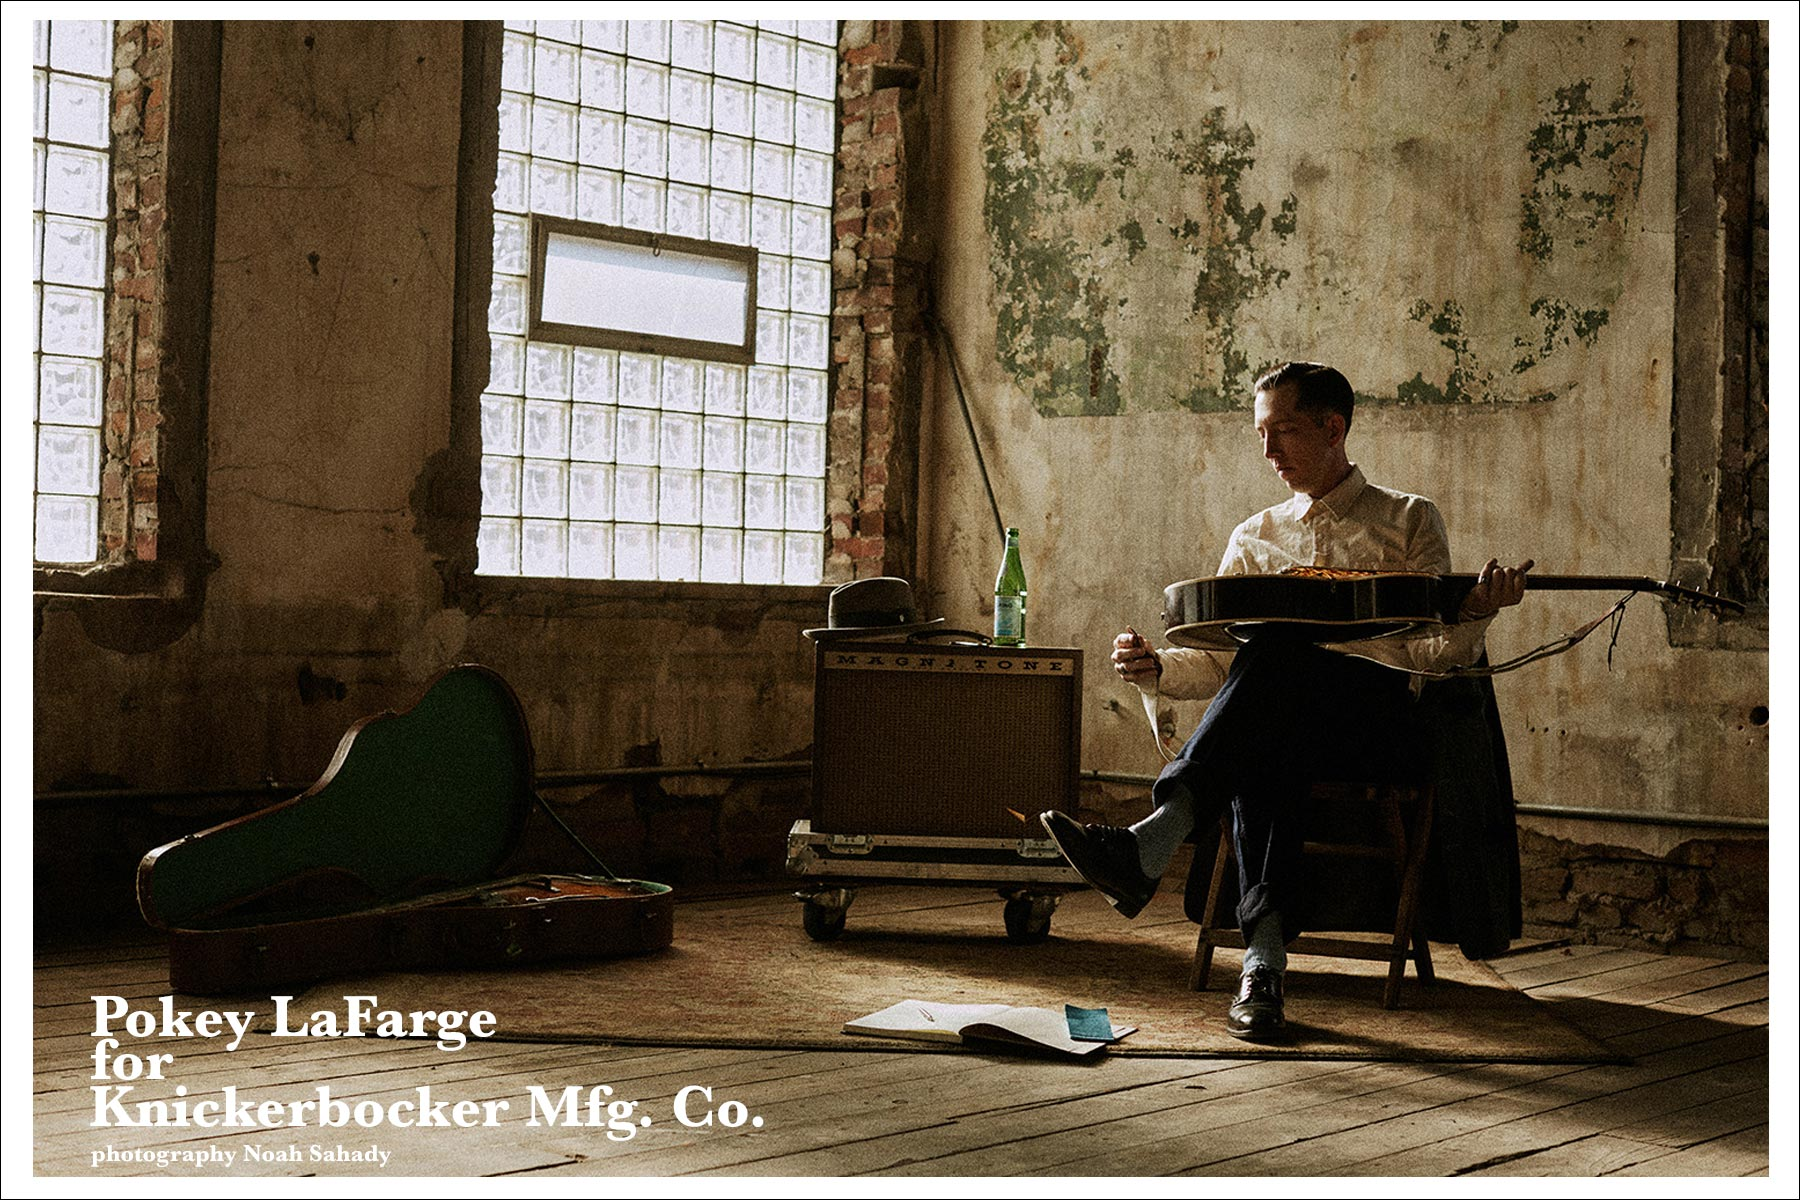 Musician Pokey LaFarge photographed by Noah Sahady for his clothing collaboration with Knickerbocker Mfg. Co. Ponyboy magazine NY.